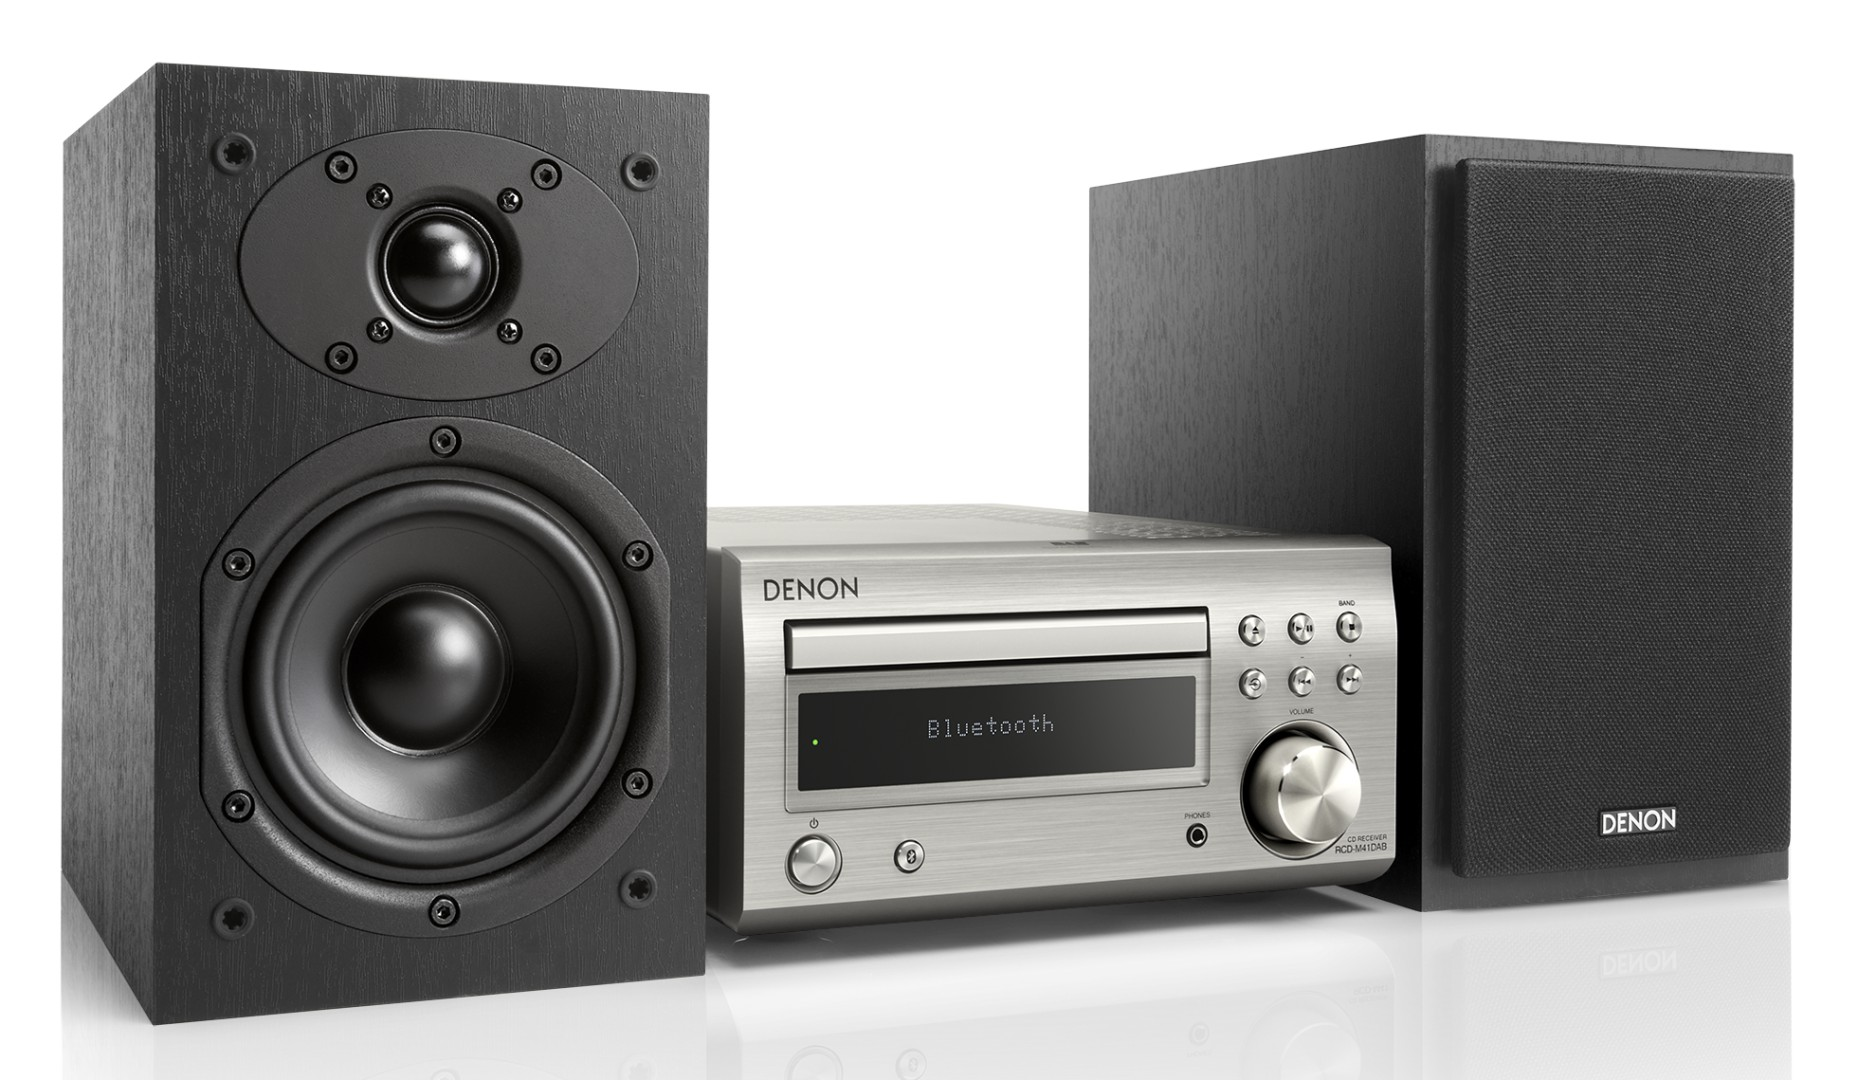 denon d m41dab compact hifi system with bluetooth. Black Bedroom Furniture Sets. Home Design Ideas